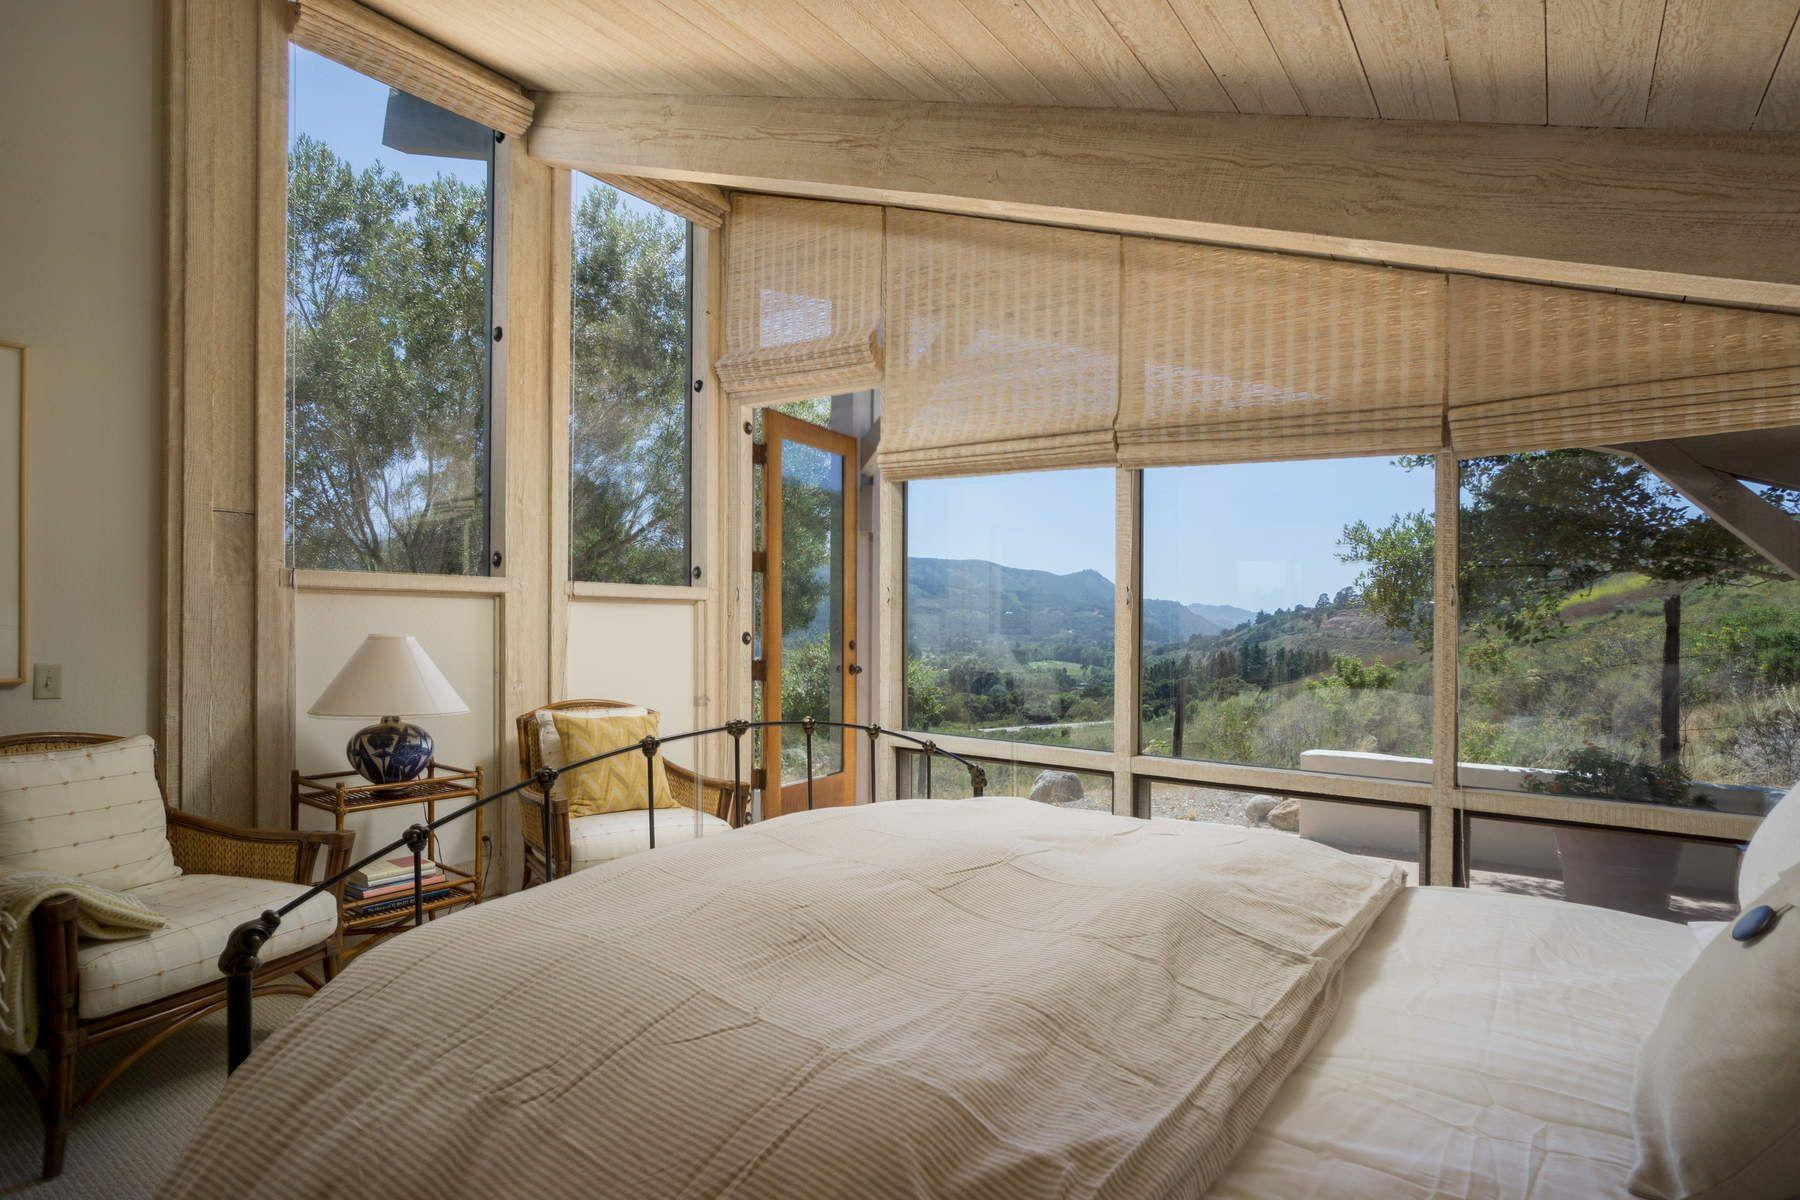 931 A West Carmel Valley Road